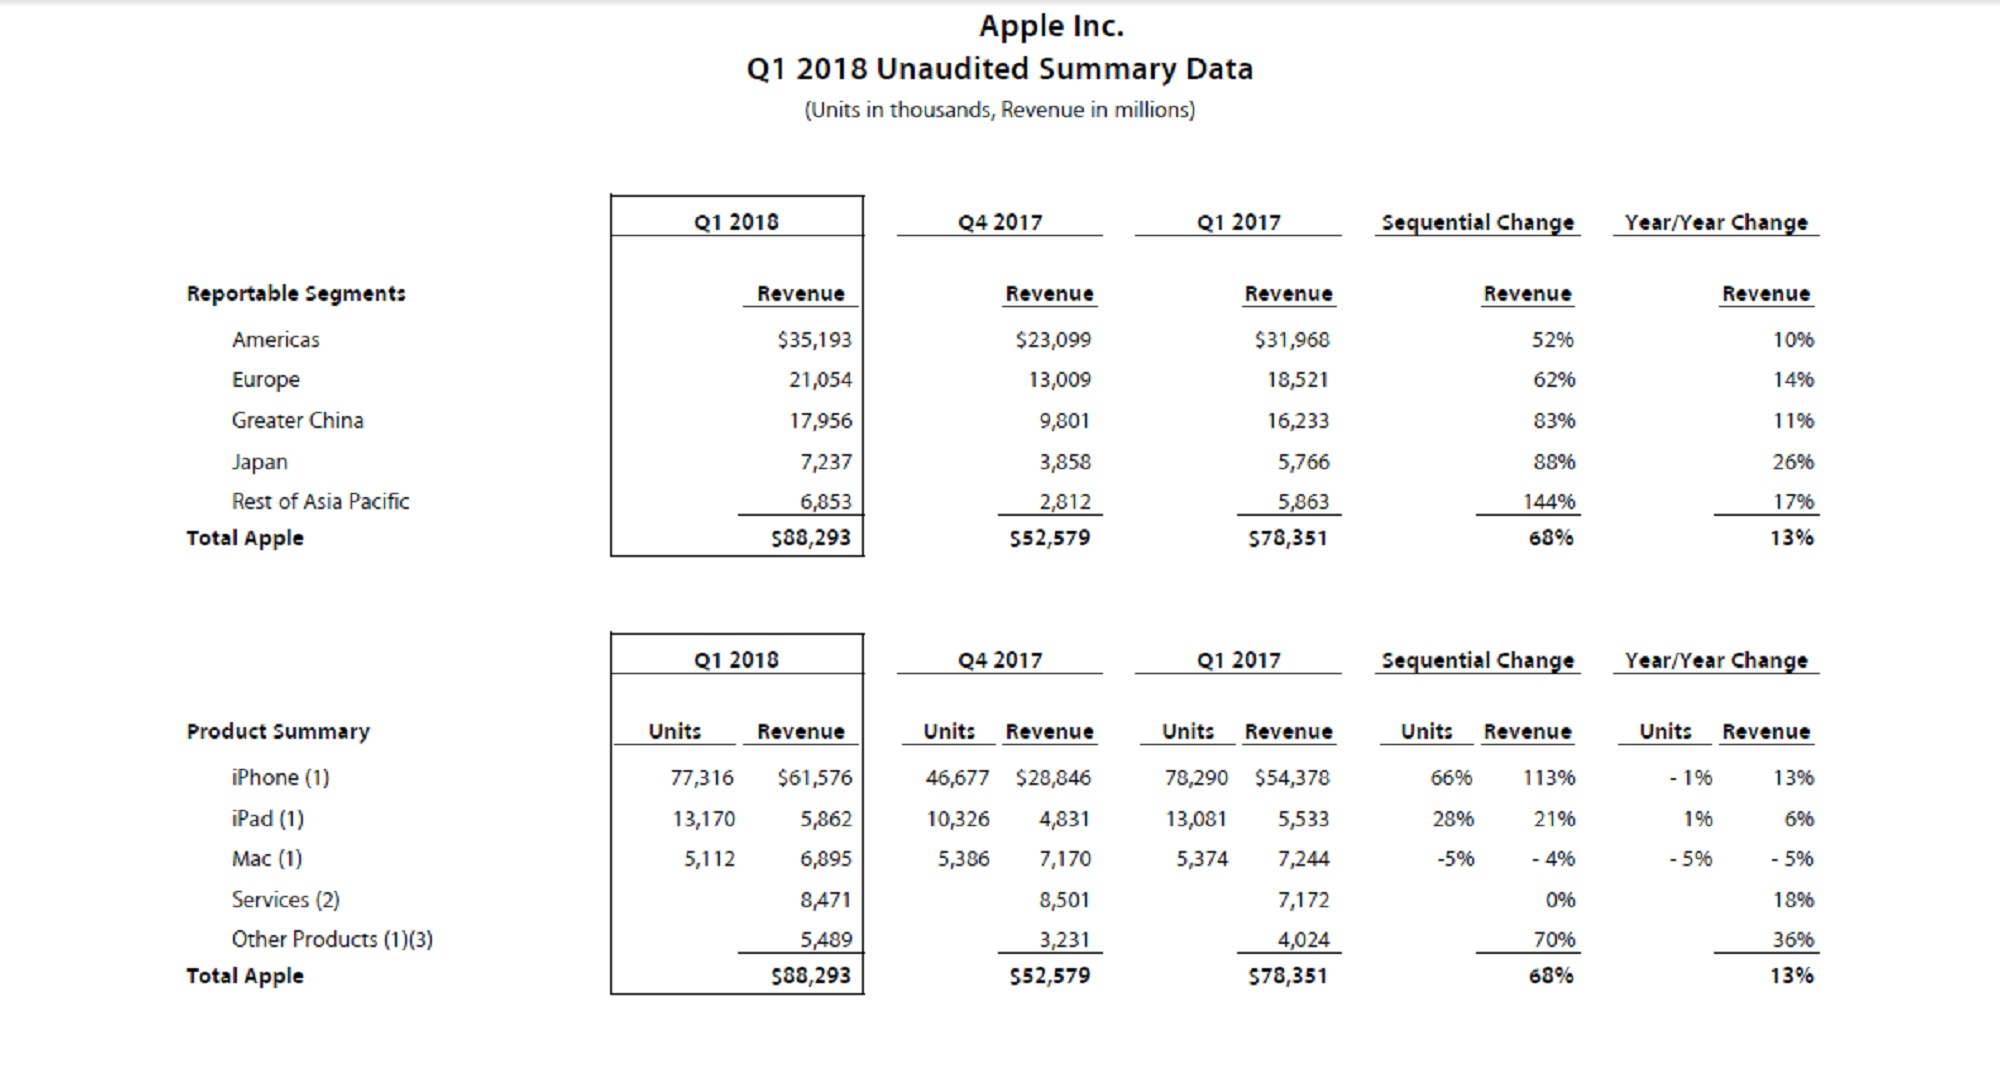 Resultados financieros de Apple del primer trimestre de 2018